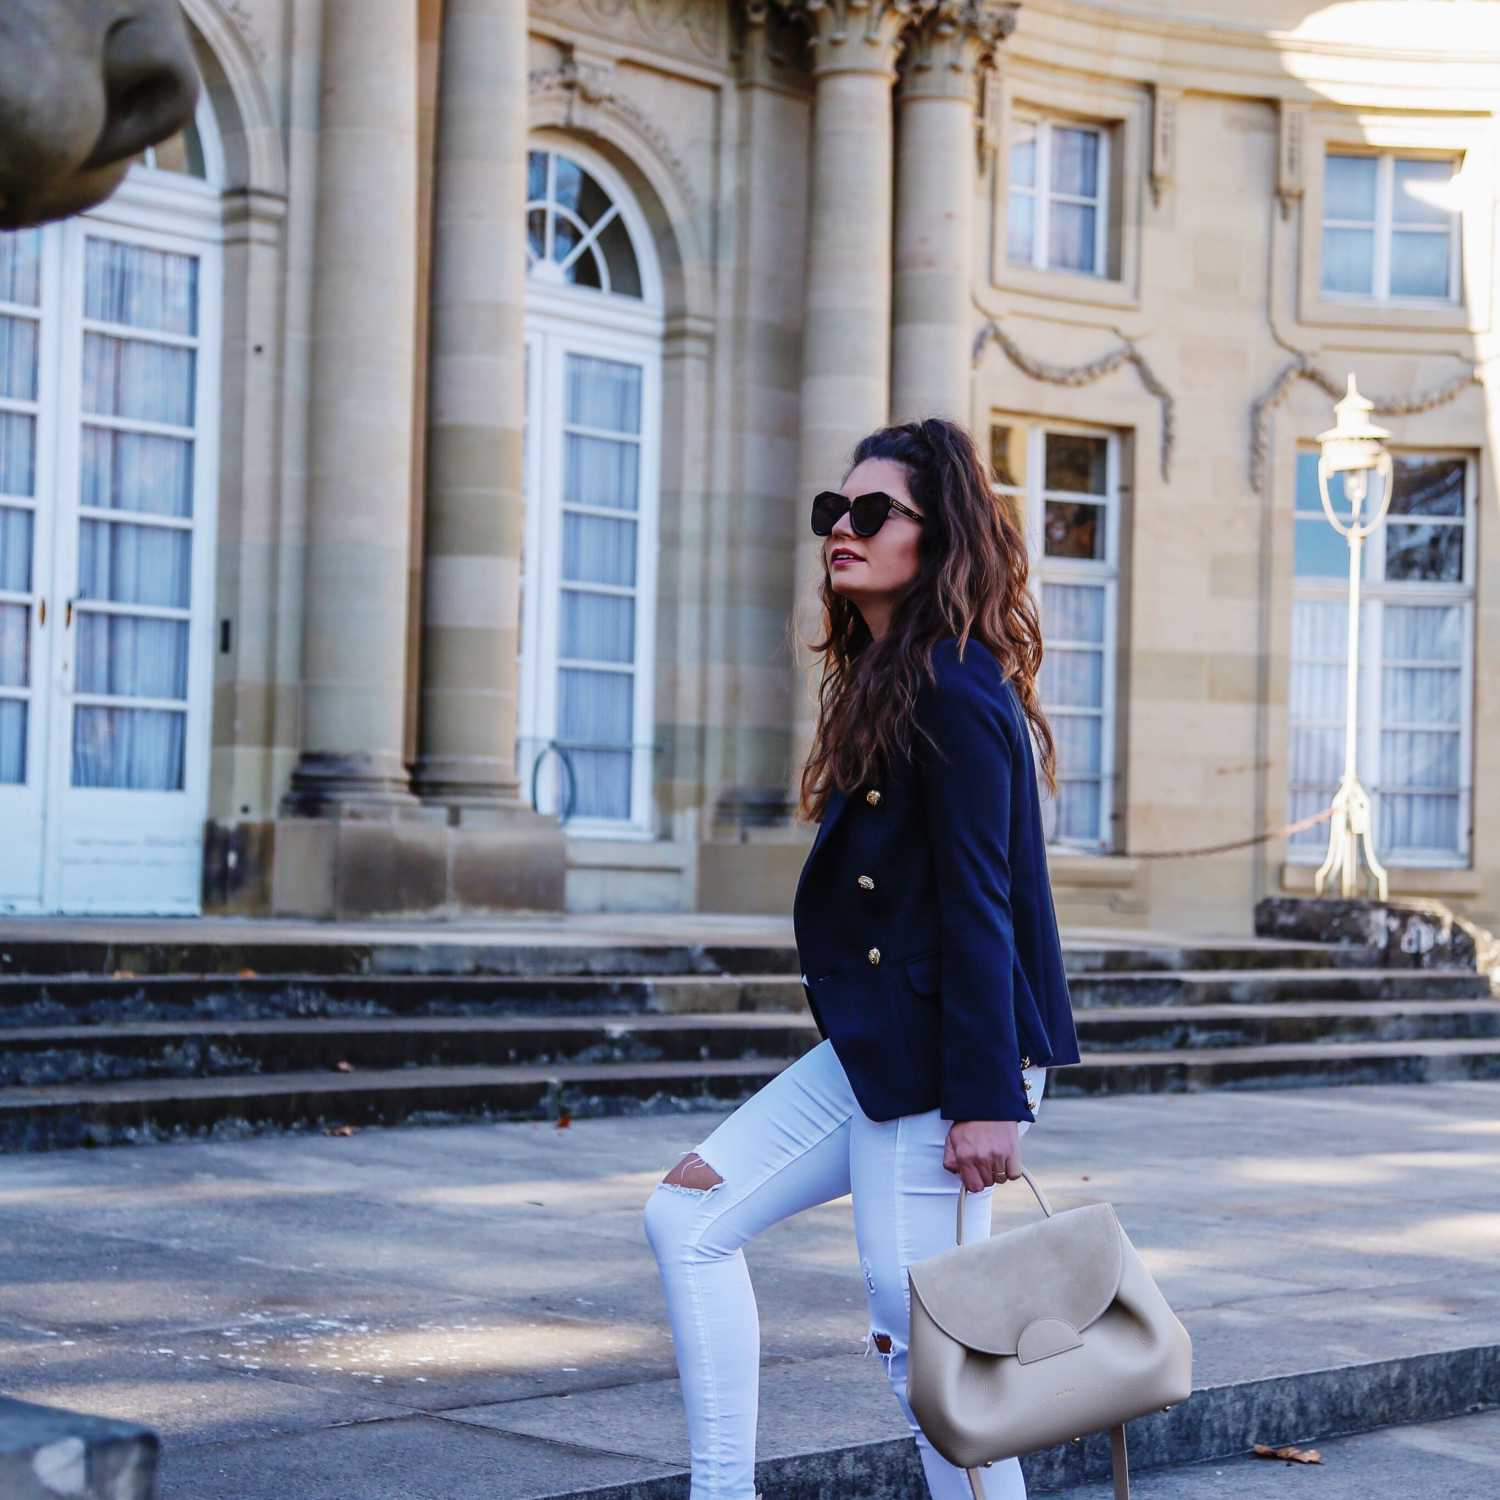 Woman in Navy Blazer and White Jeans